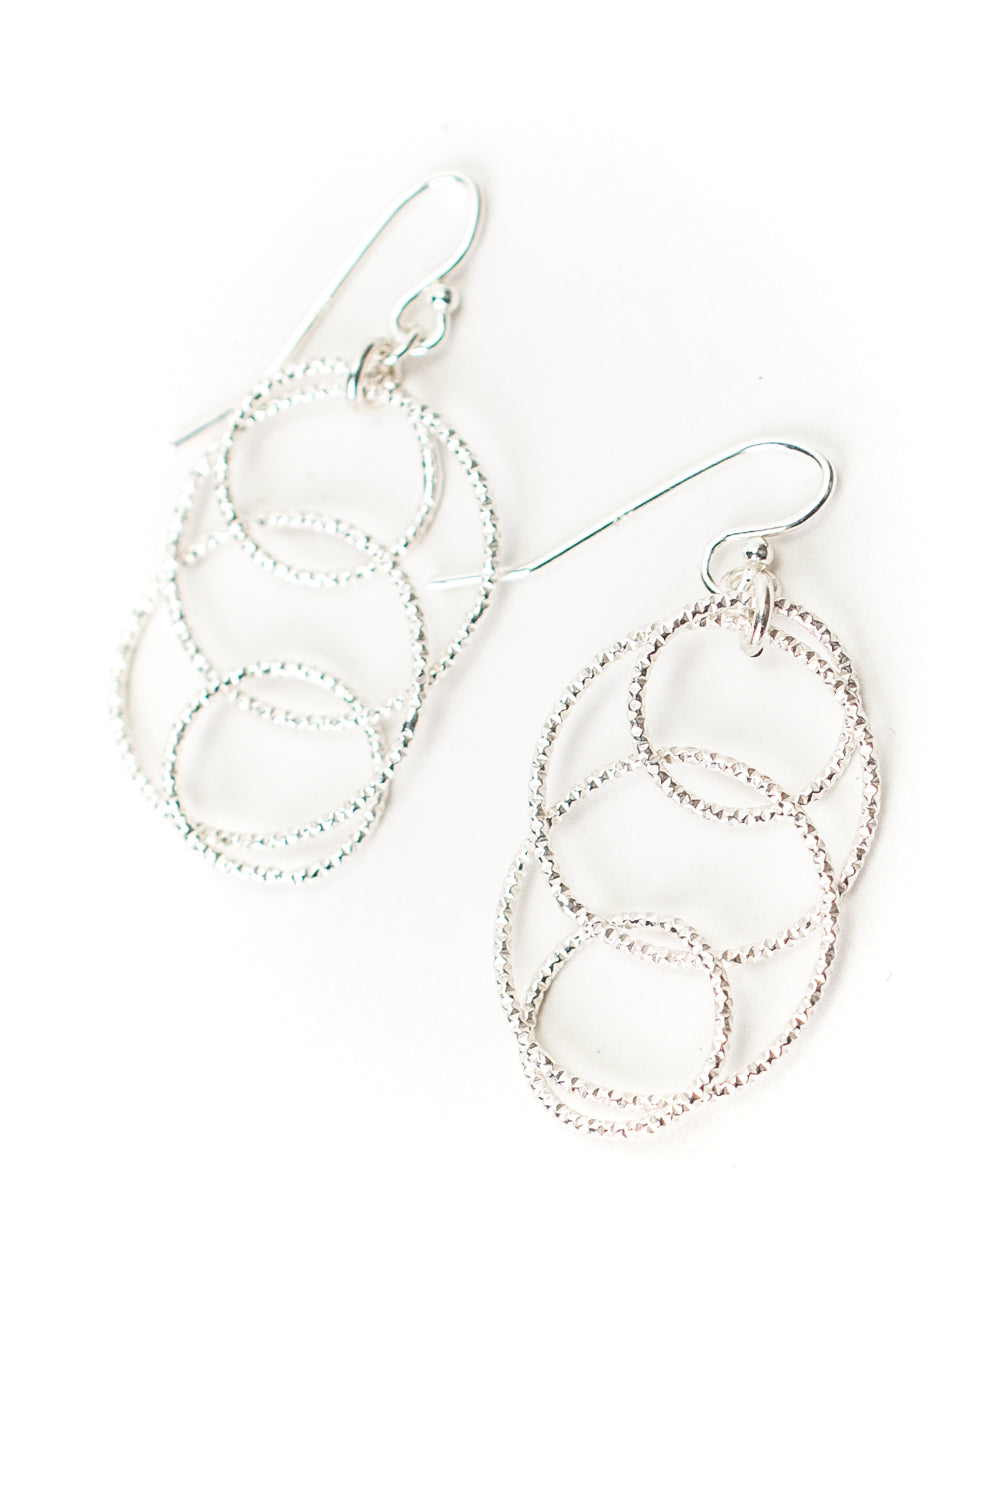 Vision Sterling Silver Layered Hoop Earrings